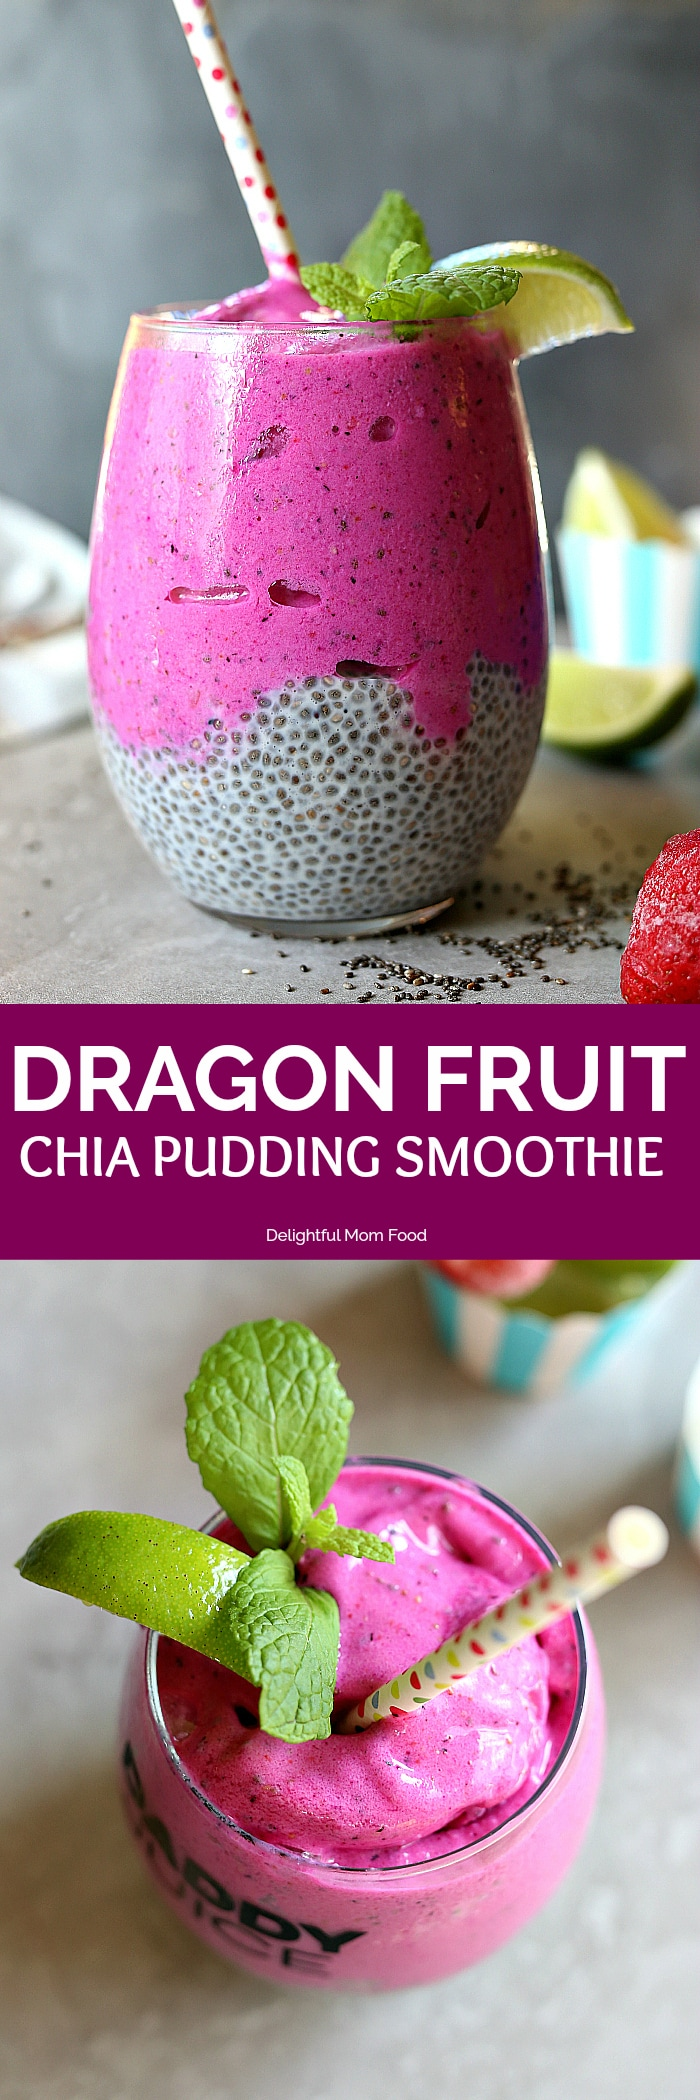 Vibrant pink dragon fruit smoothie topped on creamy chia pudding! It is a high fiber energizing superfood and is the perfect way to start your day, eat as a snack or enjoy after a workout to refuel your body! #dragonfruit #smoothie #bowl #chiapudding #healthy #breakfast #snack #easy #pitaya | delightfulmomfood.com